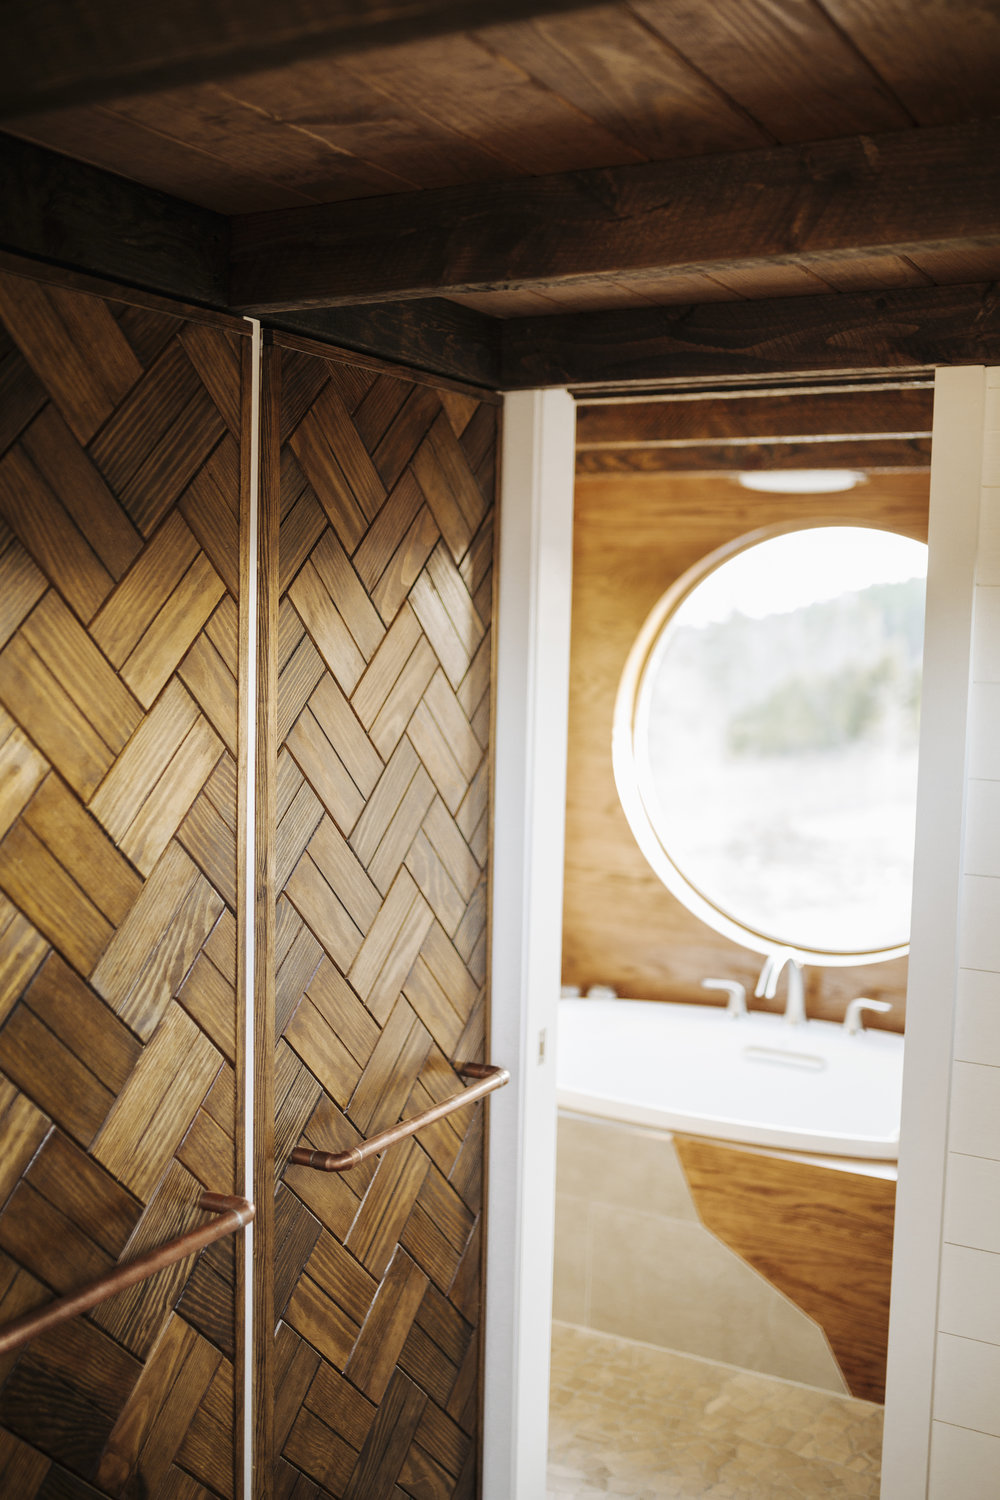 The Monocle by Wind River Tiny Homes - custom his/hers pull out closet, wood weave, copper pipe pulls, tile wet bath, bath tub